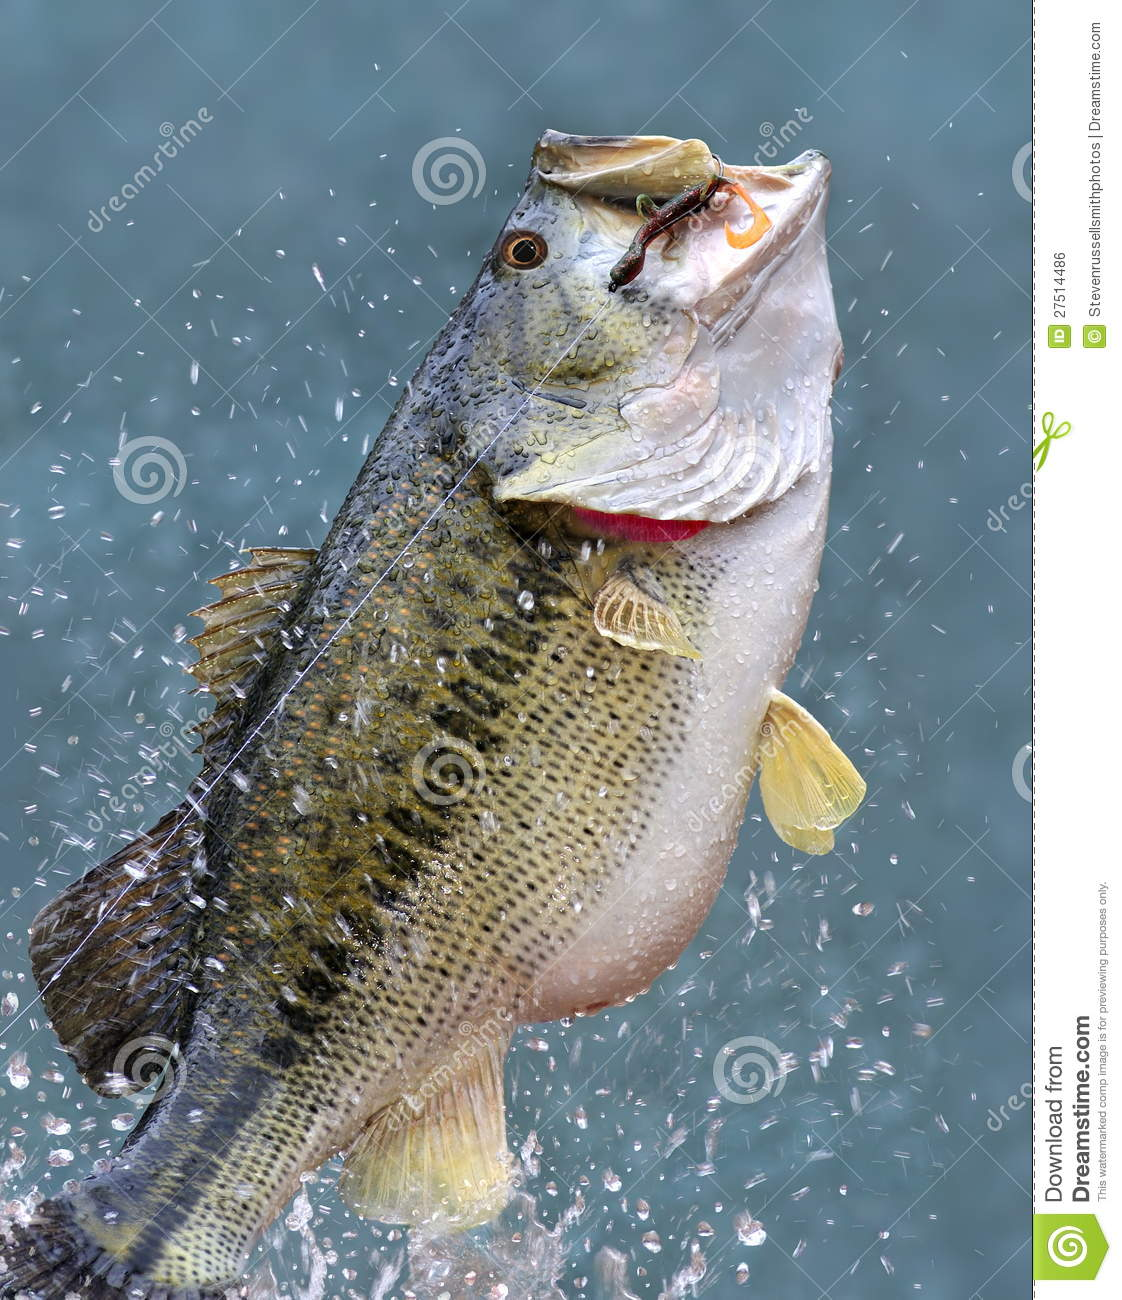 Large mouth bass jumping